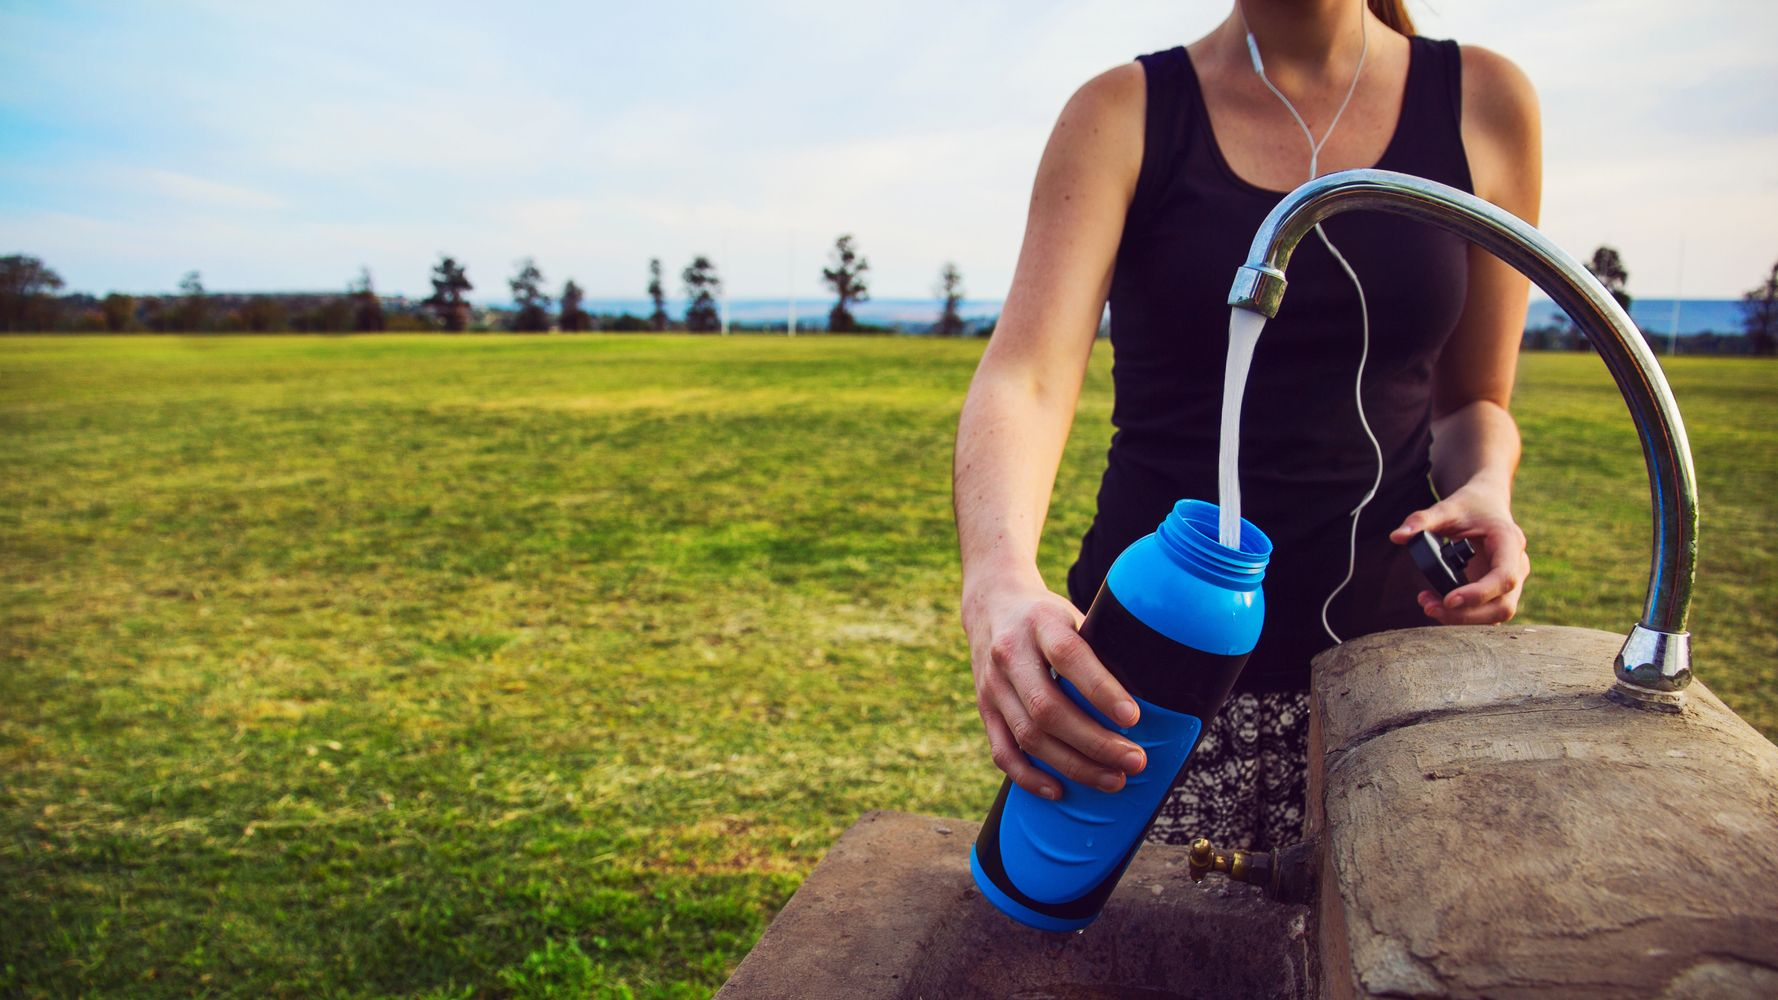 7 Of The Highest-Rated Water Bottles With Filters On Amazon